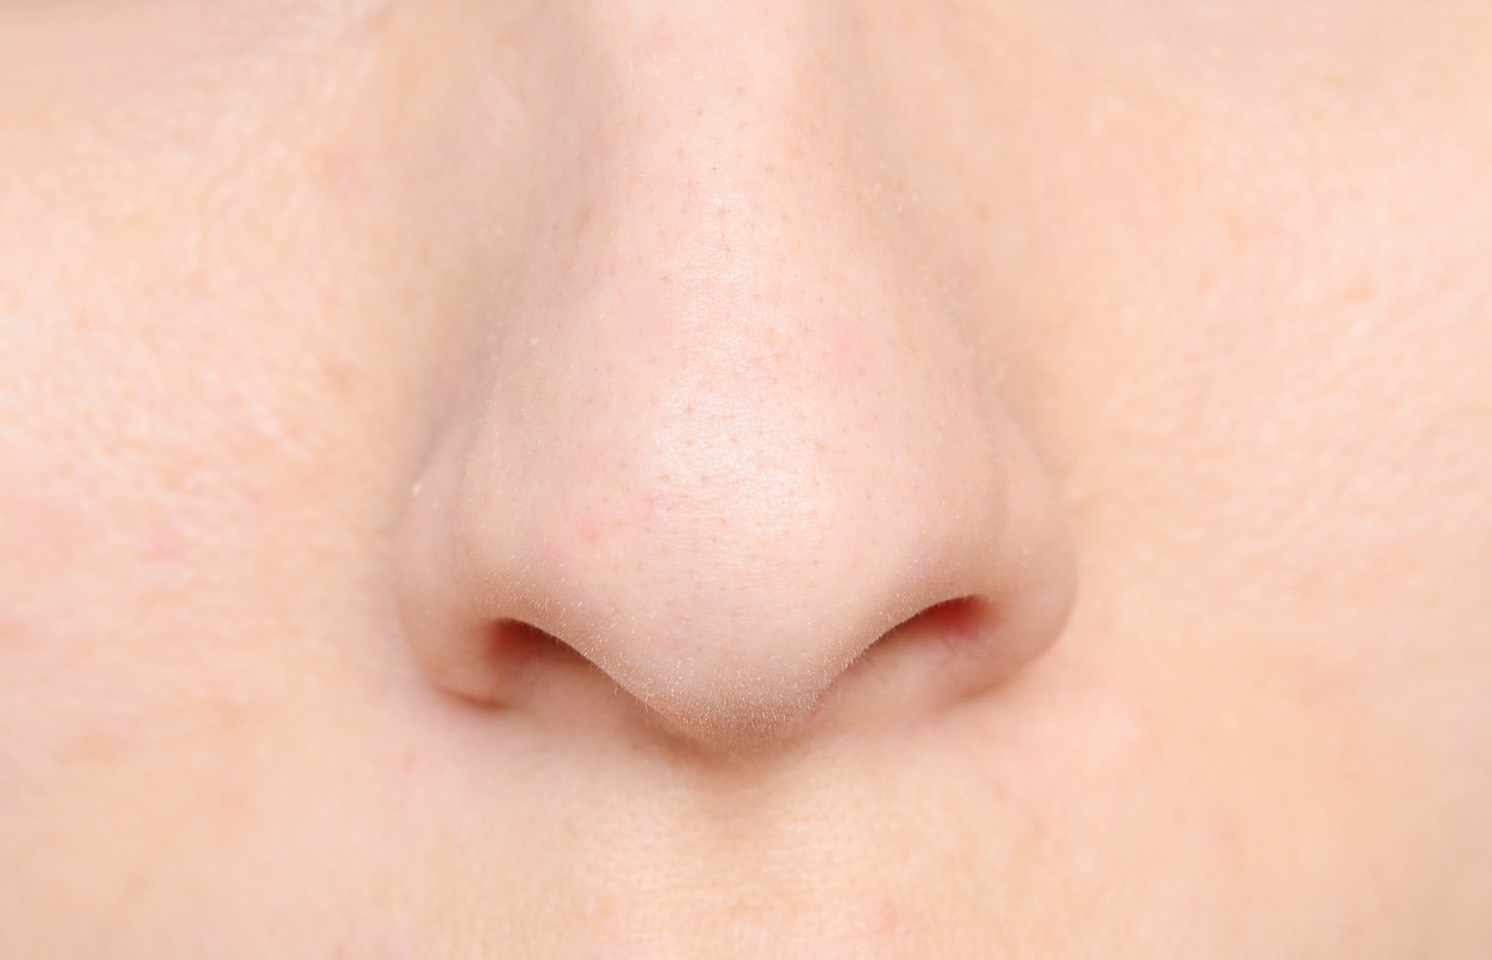 8. Put Vaseline on your nose everyday to make it soft and smooth for the winter.